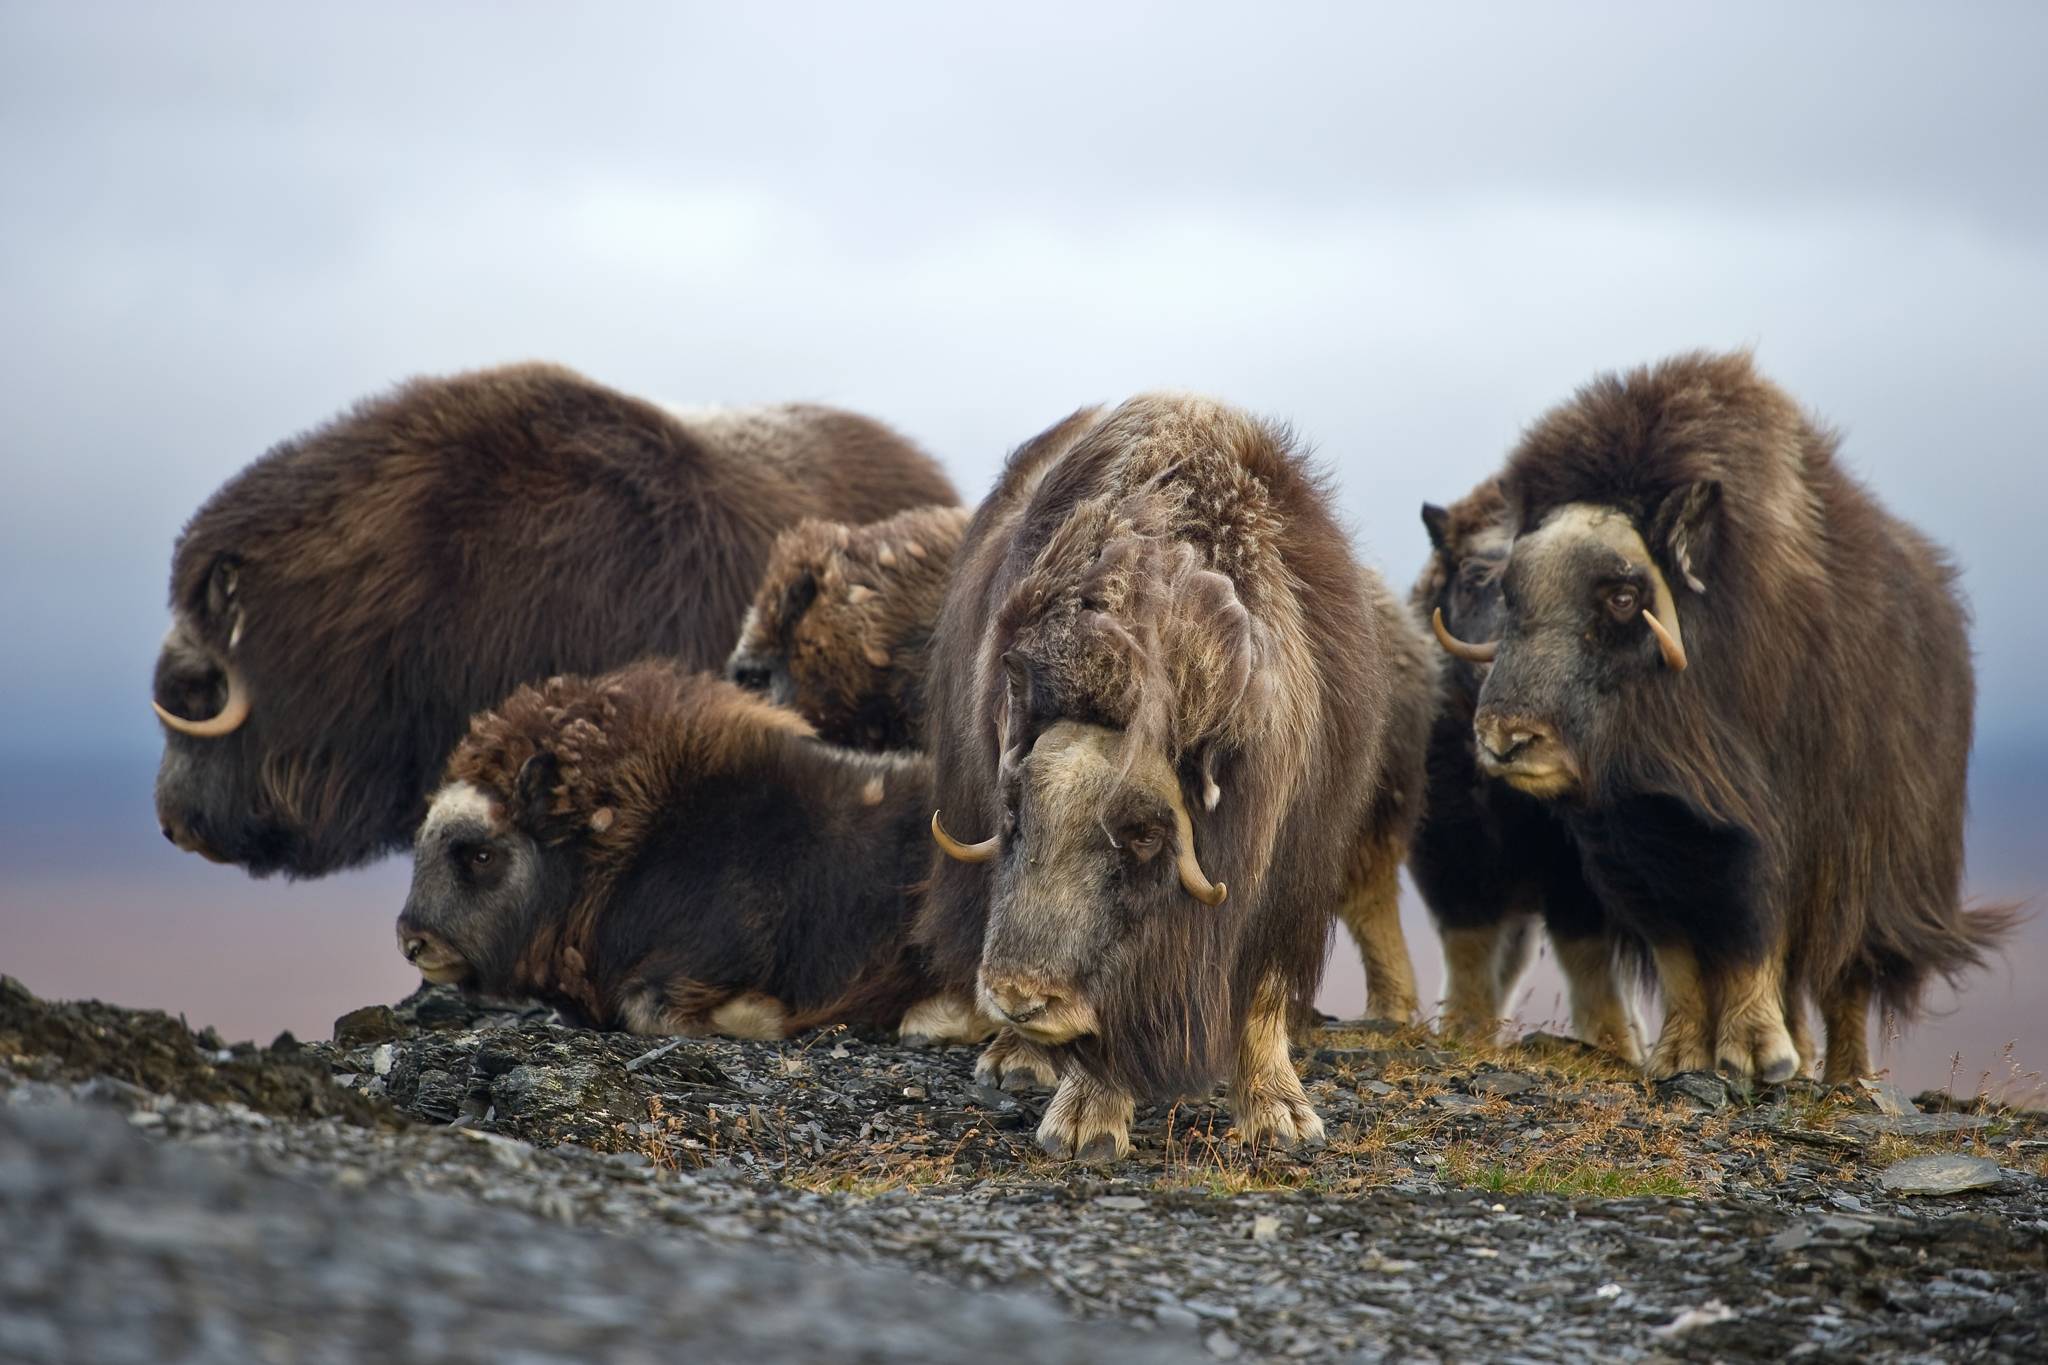 A herd of muskoxen (Ovibos moschatus) traverses Wrangel Island. A population of 20 muskoxen were reintroduced here from Canada in 1975. Paleontology records show that the animals lived on the island during the late Pleistocene.